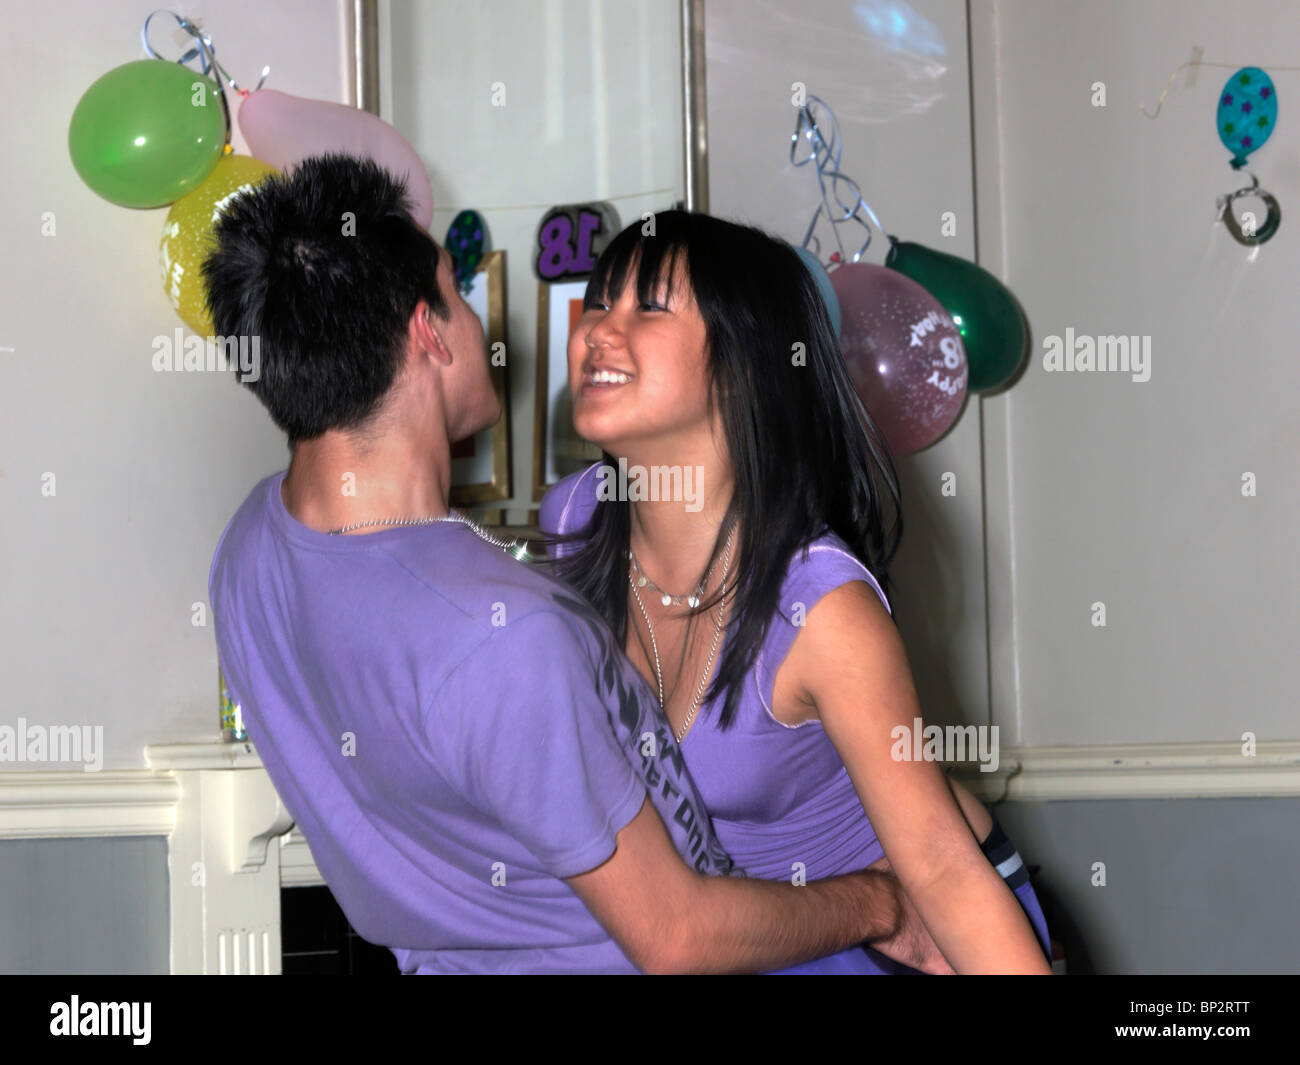 5375dcf92 Teenagers Dancing at 18th Birthday Party Stock Photo  30795432 - Alamy